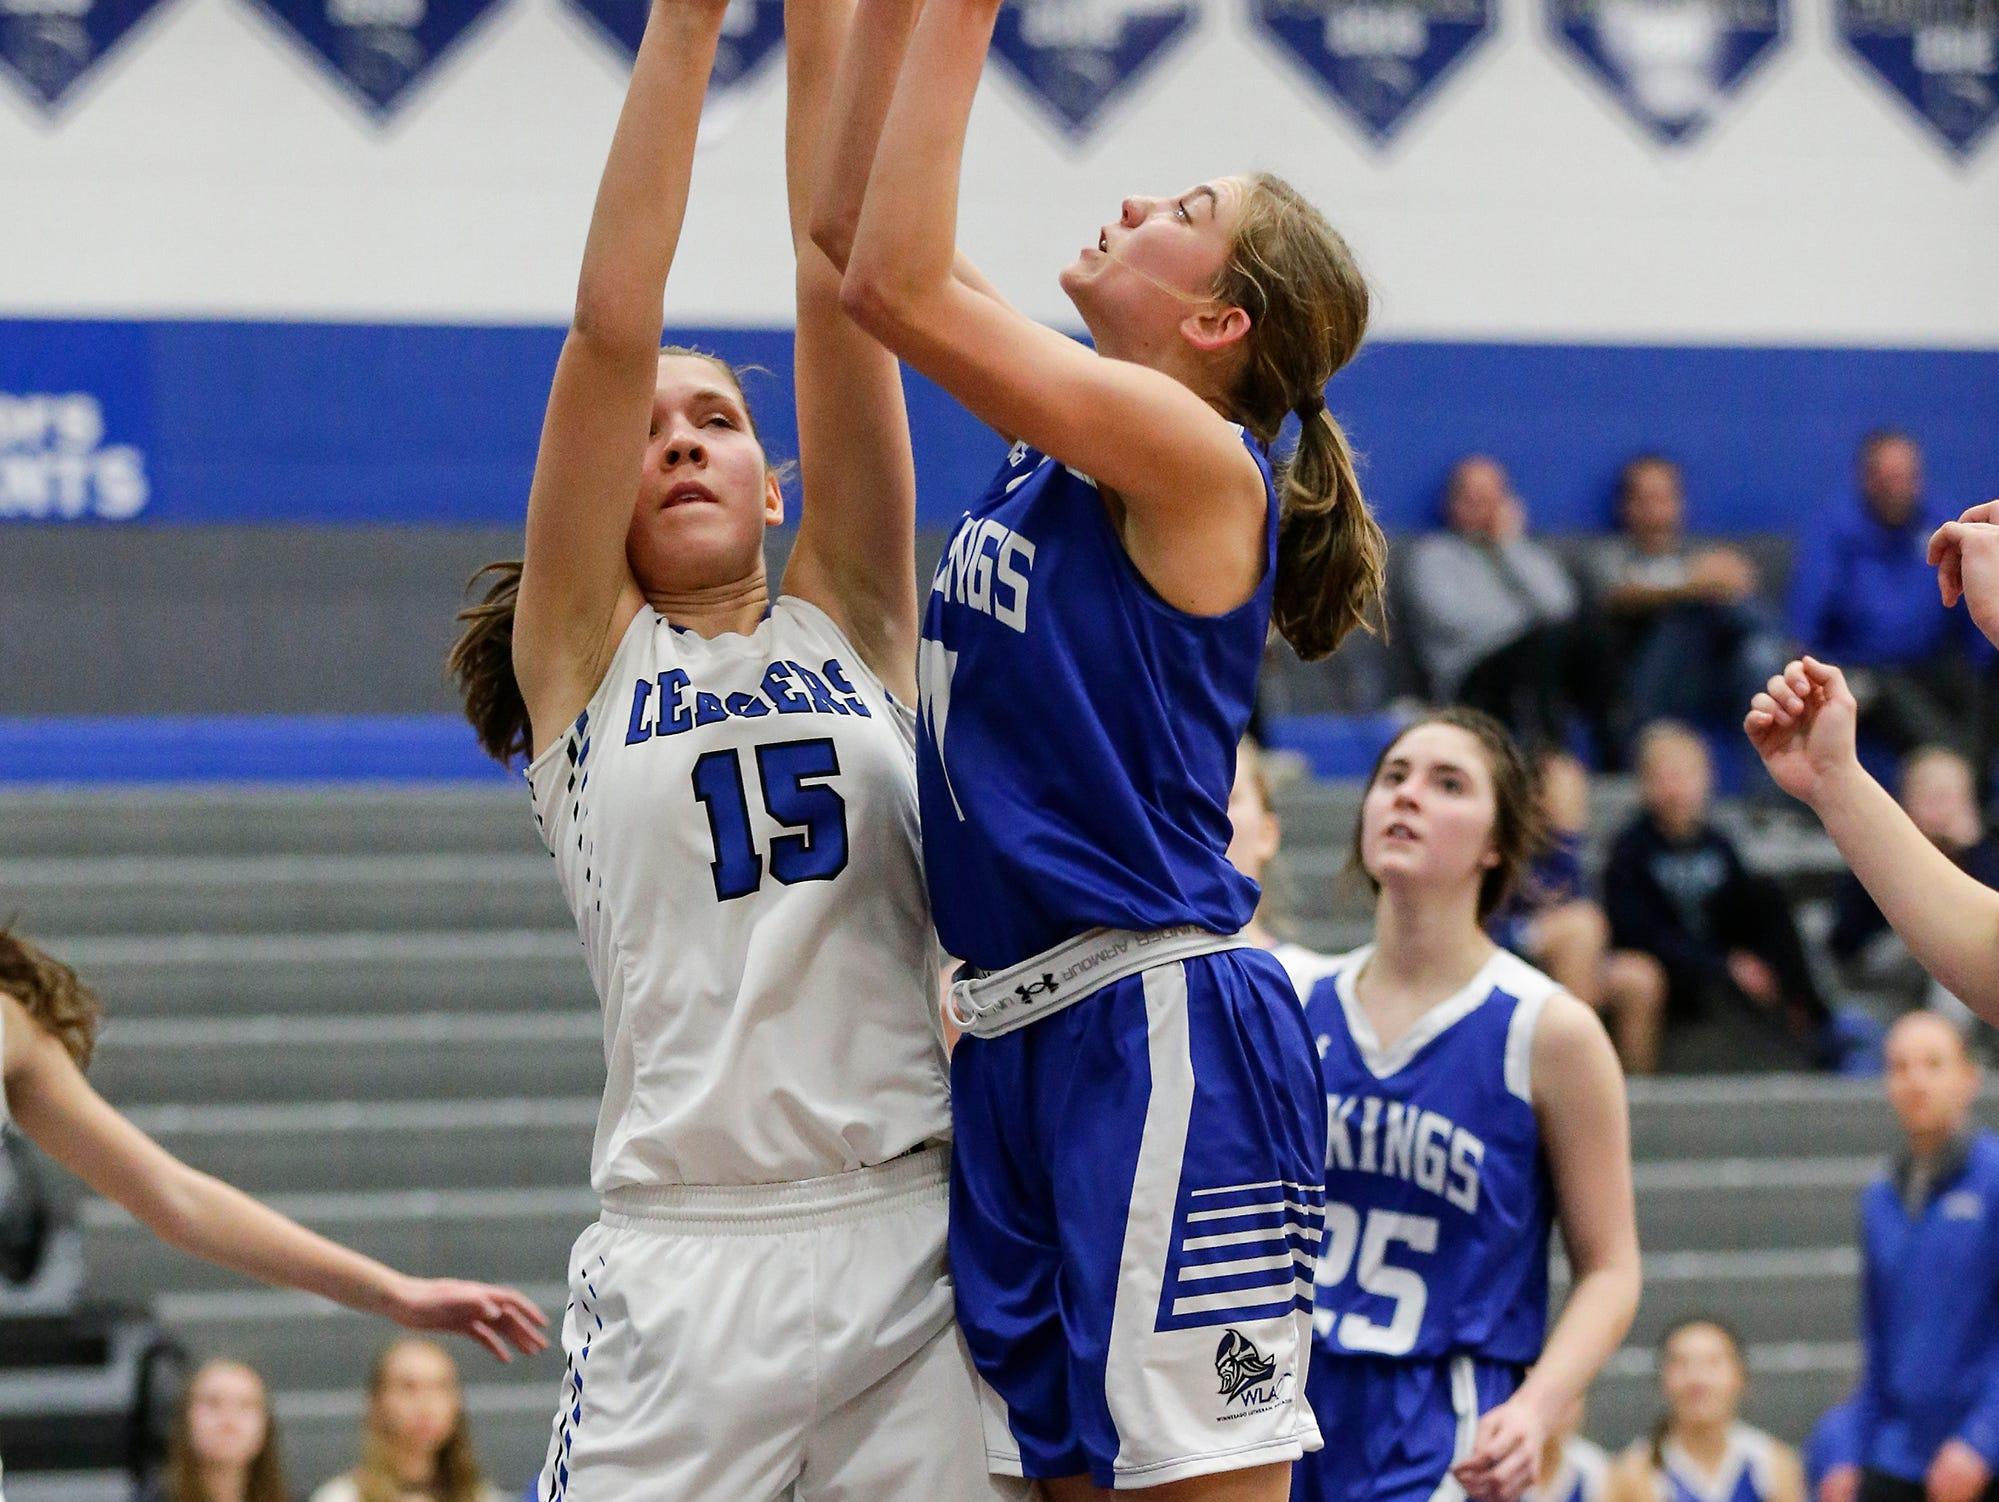 Winnebago Lutheran Academy girls basketball's Alyssa Lorenz goes up for a shot against St. Mary's Springs Academy's Maddie Gehring during their game Tuesday, December 18, 2018 in Fond du Lac. Winnebago Lutheran Academy won the game 58-54. Doug Raflik/USA TODAY NETWORK-Wisconsin